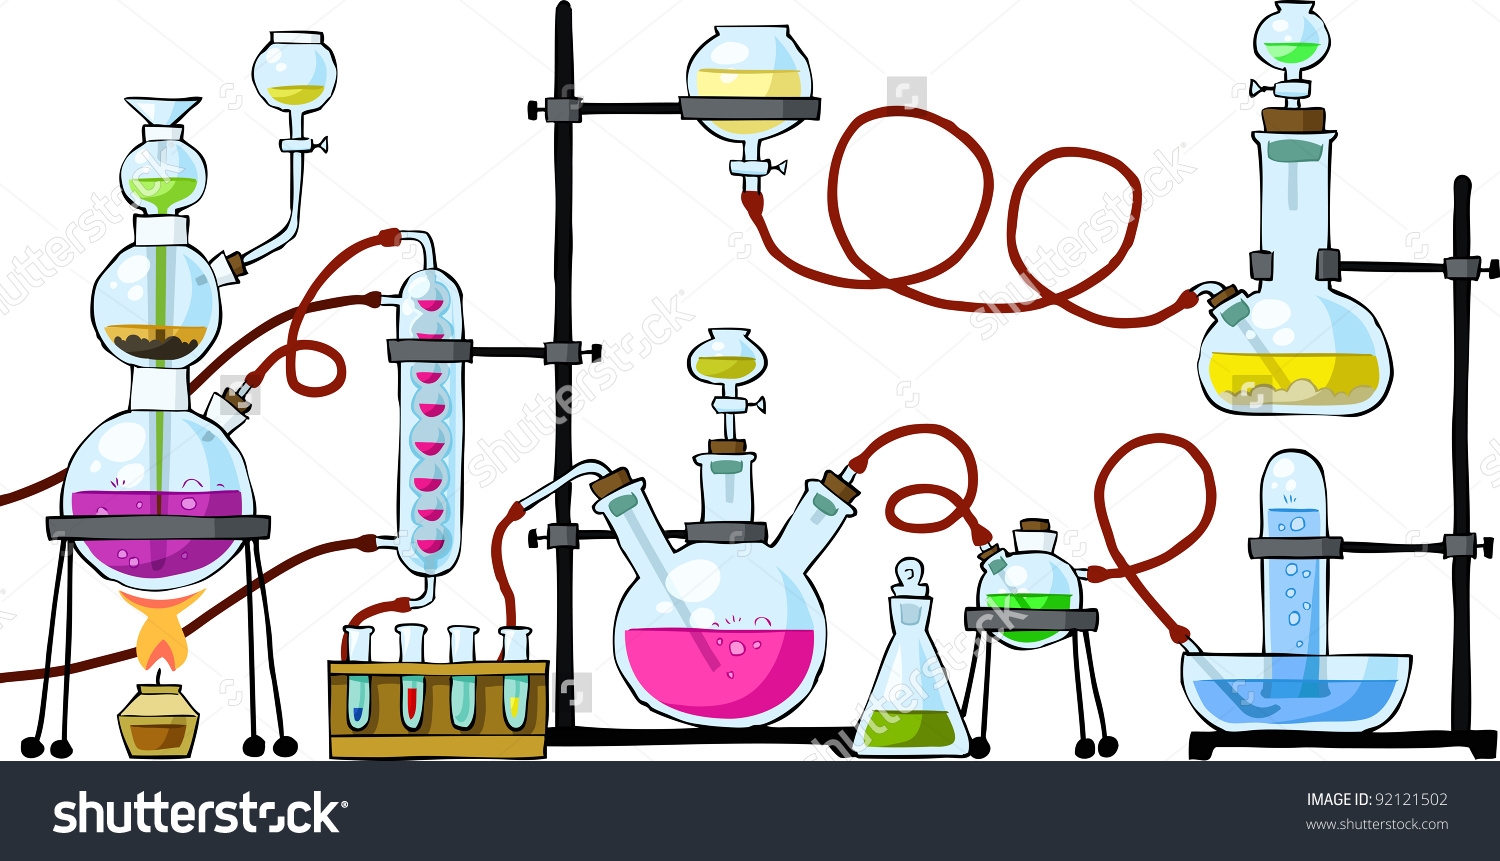 Laboratory clipart science tool Background Lab background clipart clipart